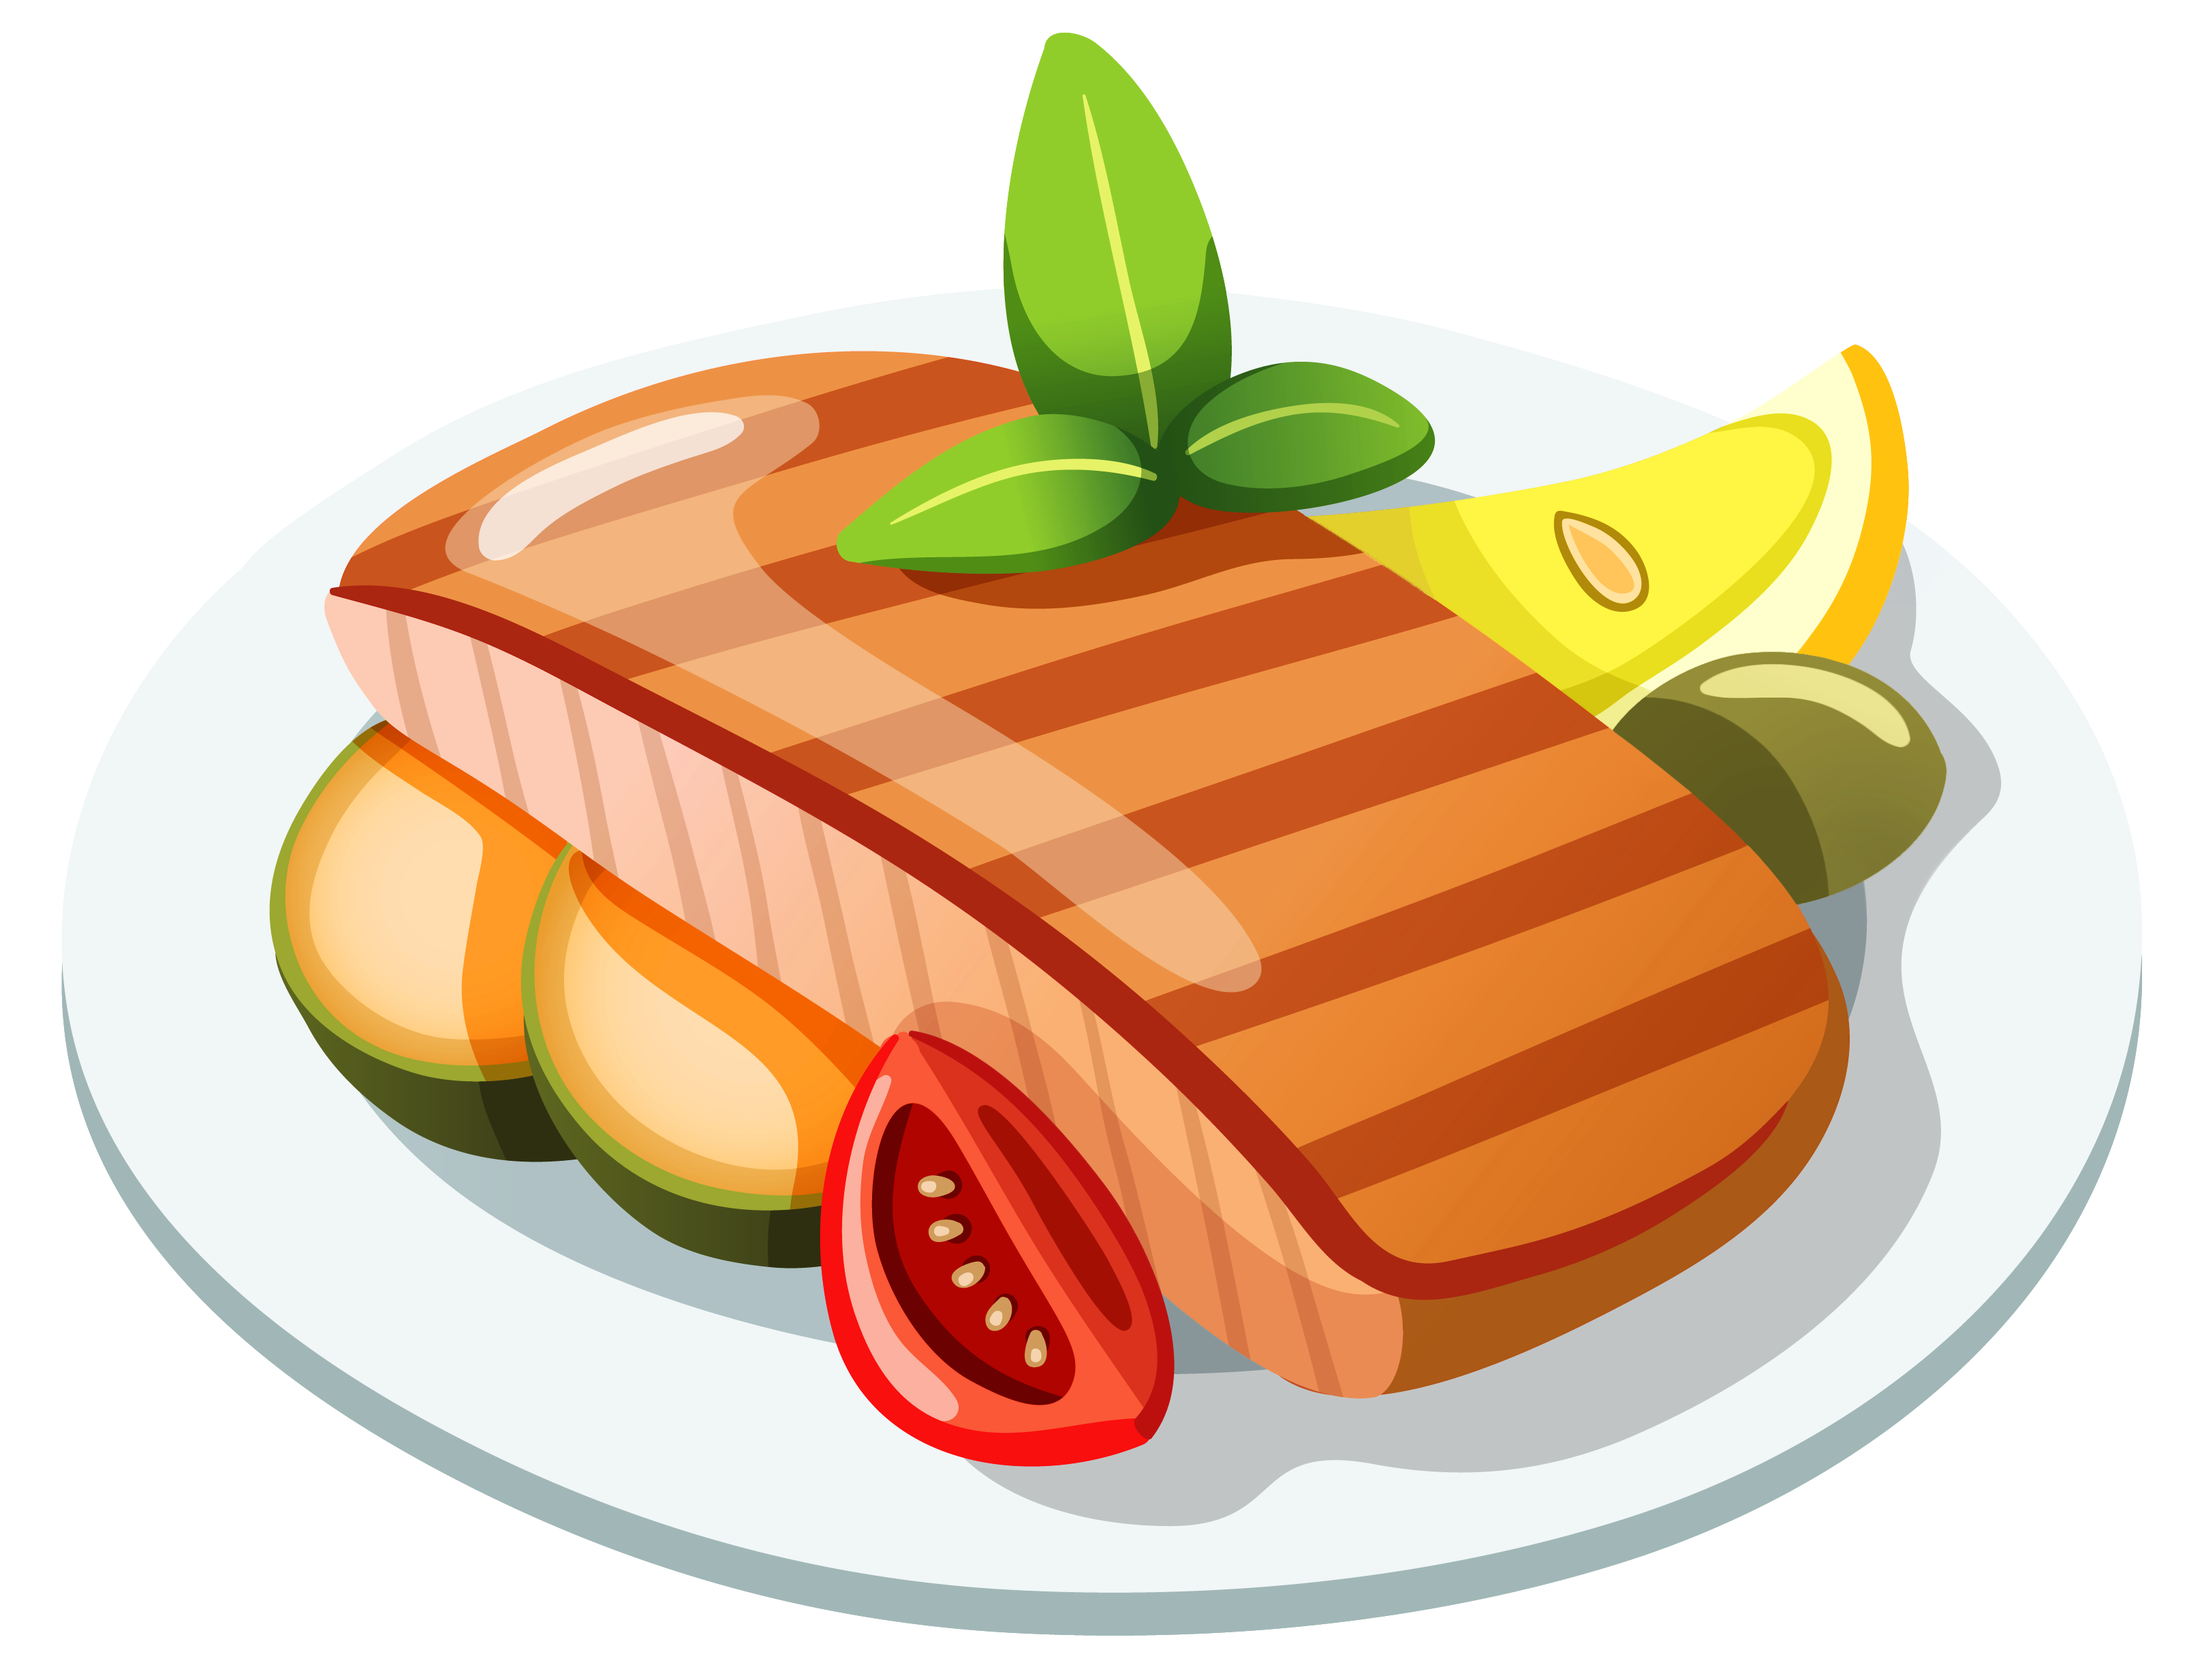 Beef clipart grilled chicken Cliparts Free meat Meat clker